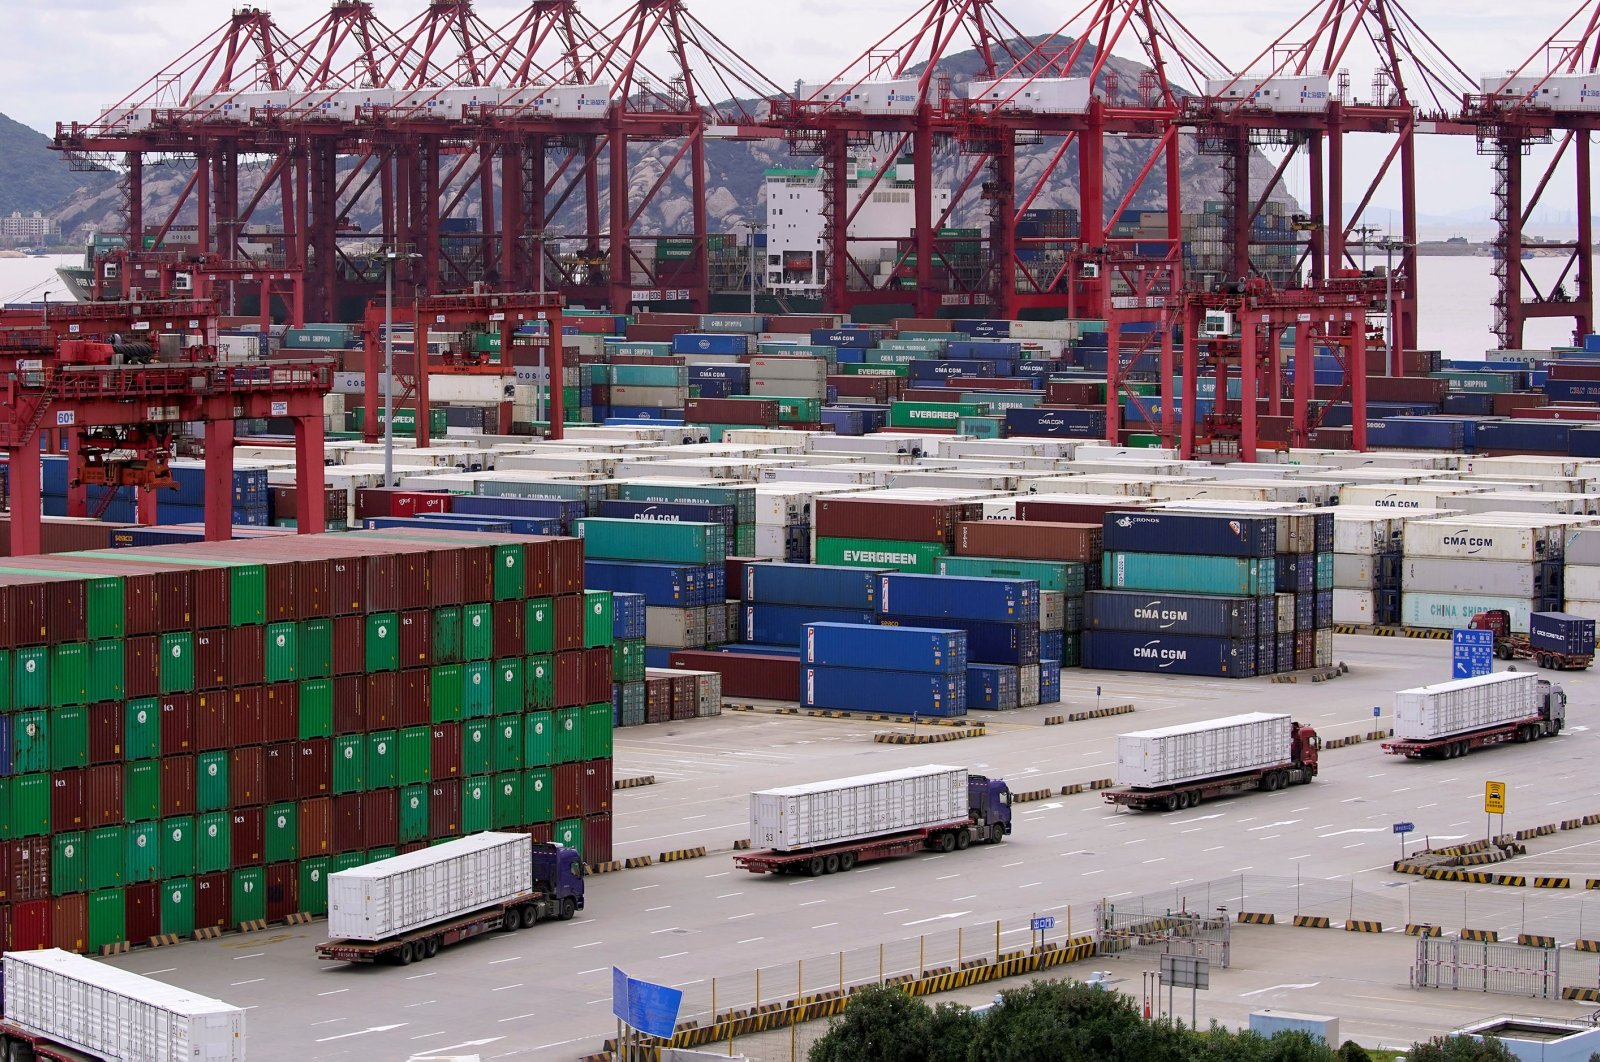 Containers and trucks are seen at the Yangshan Deep Water Port in Shanghai, China, as the pandemic continues, Oct. 19, 2020. (Reuters Photo)